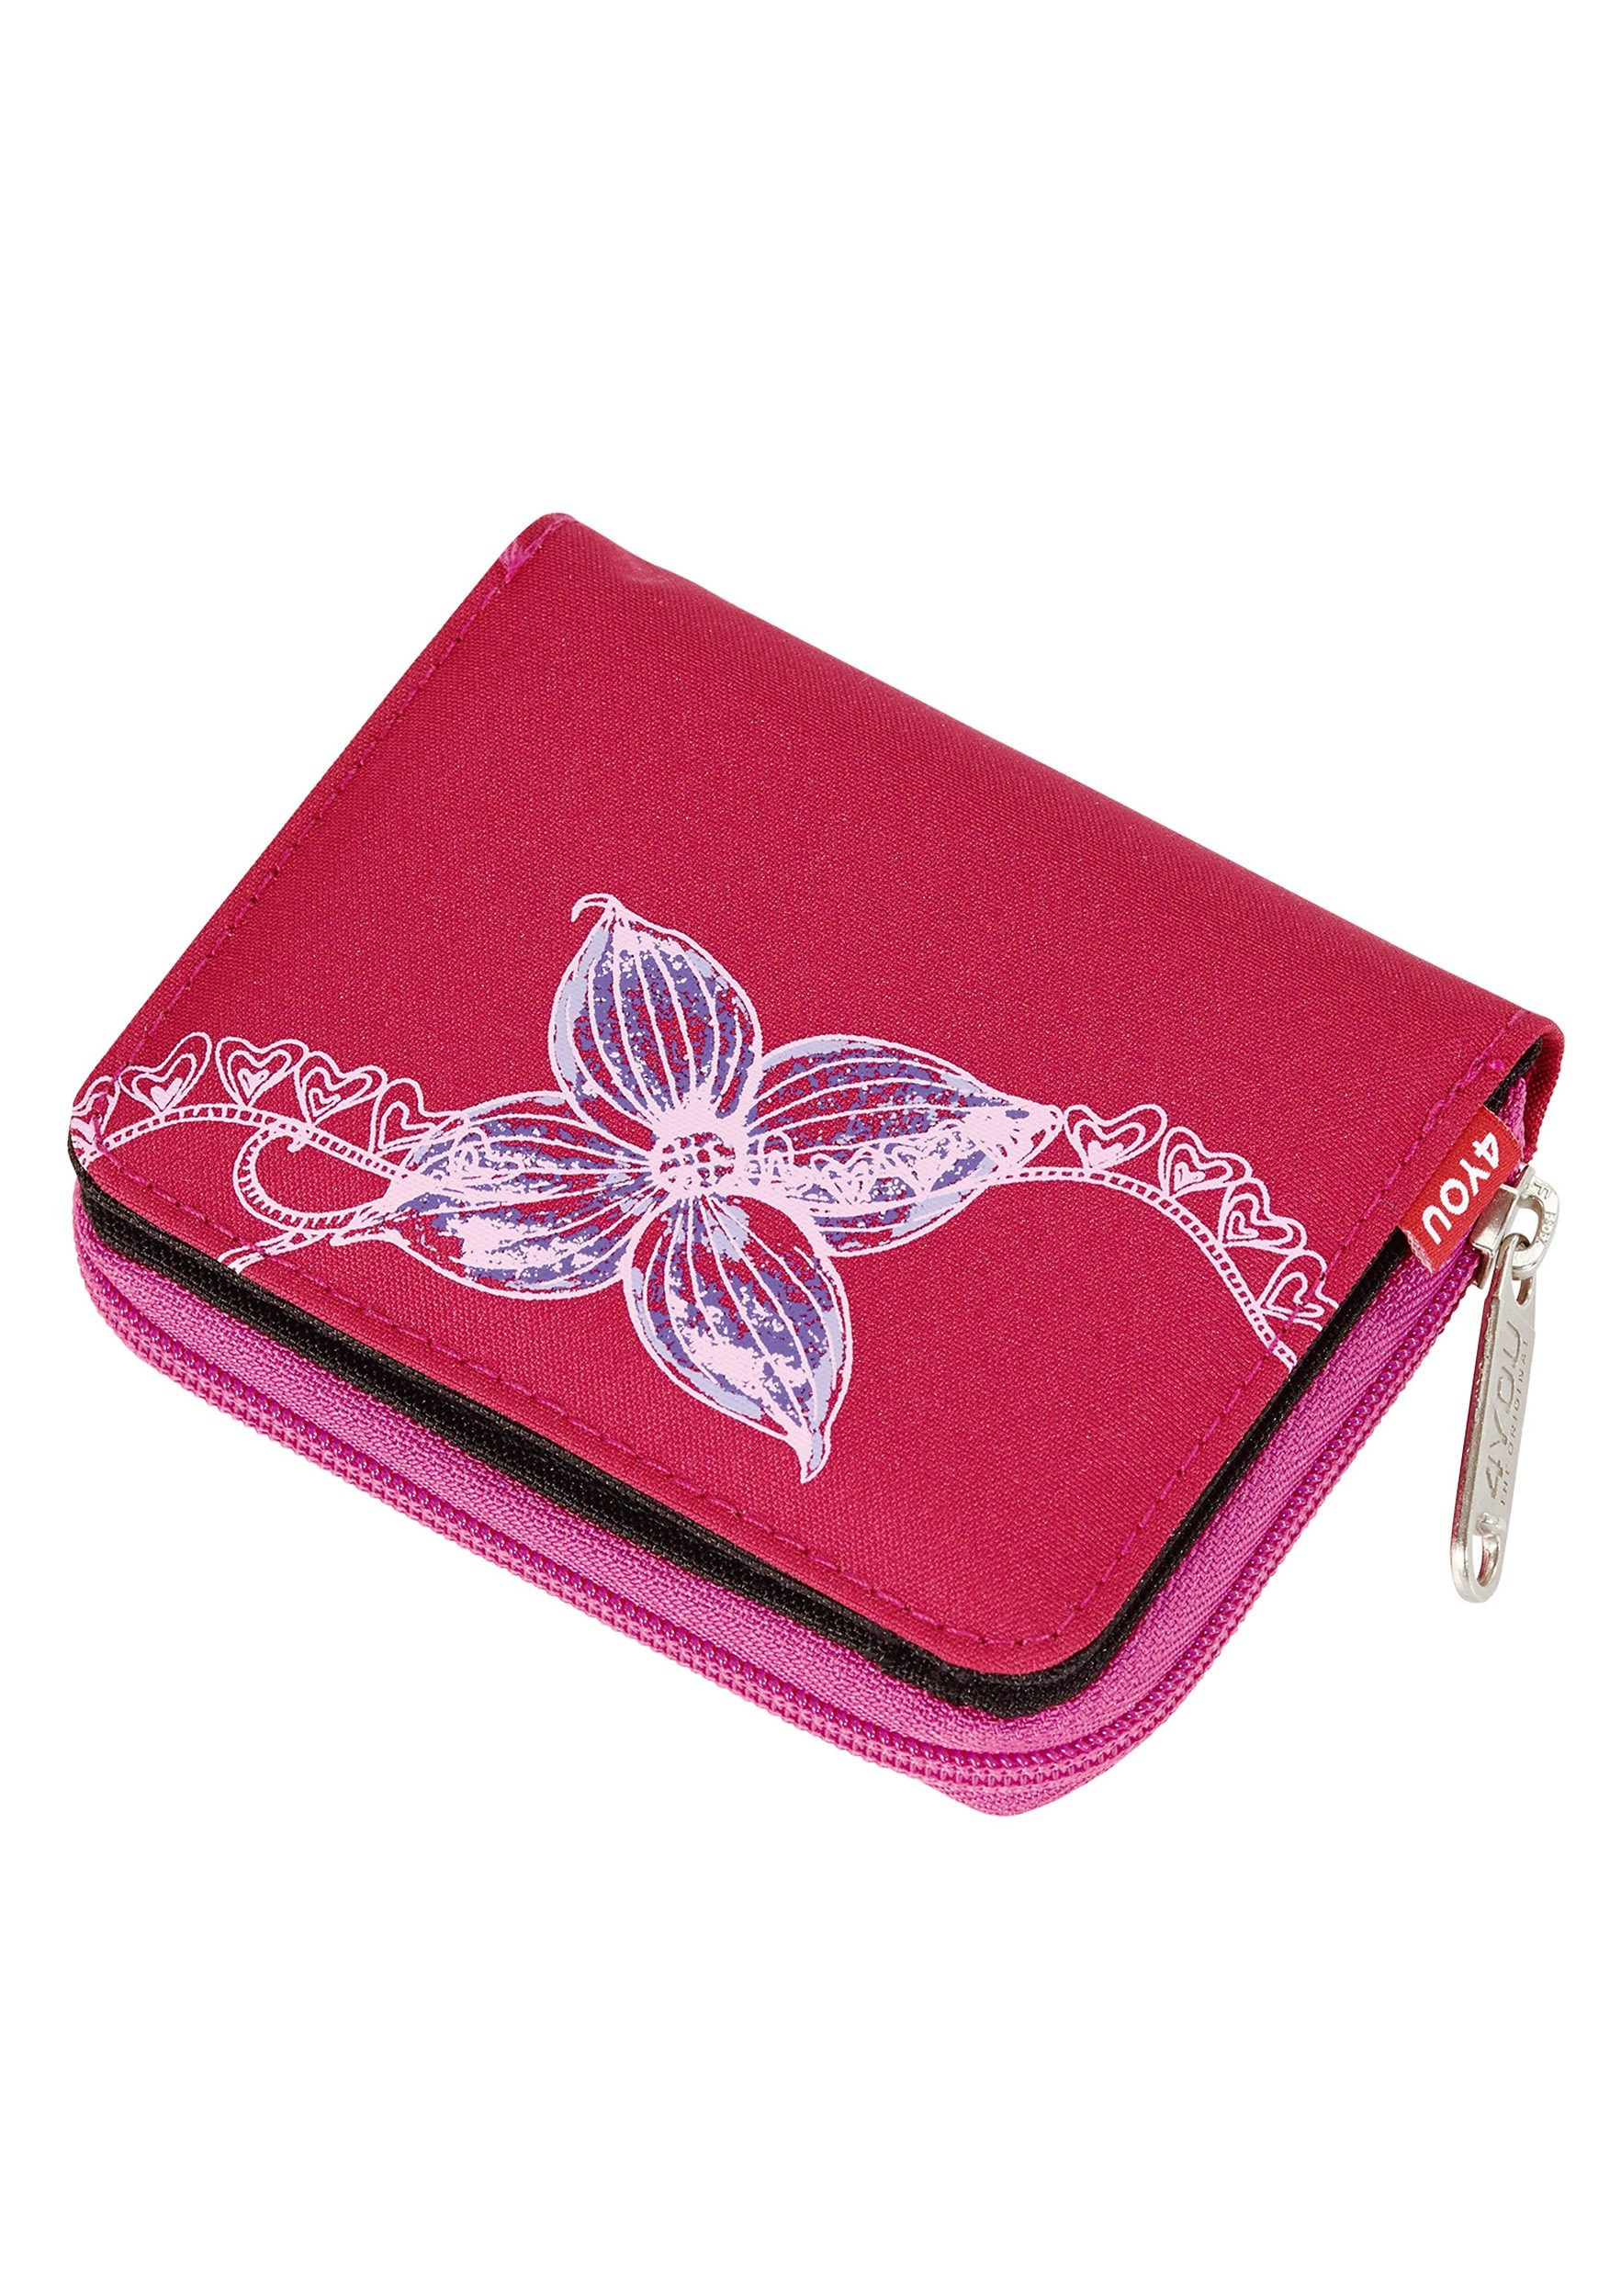 4YOU Geldbörse, »Zipper Wallet - Flower Lace«